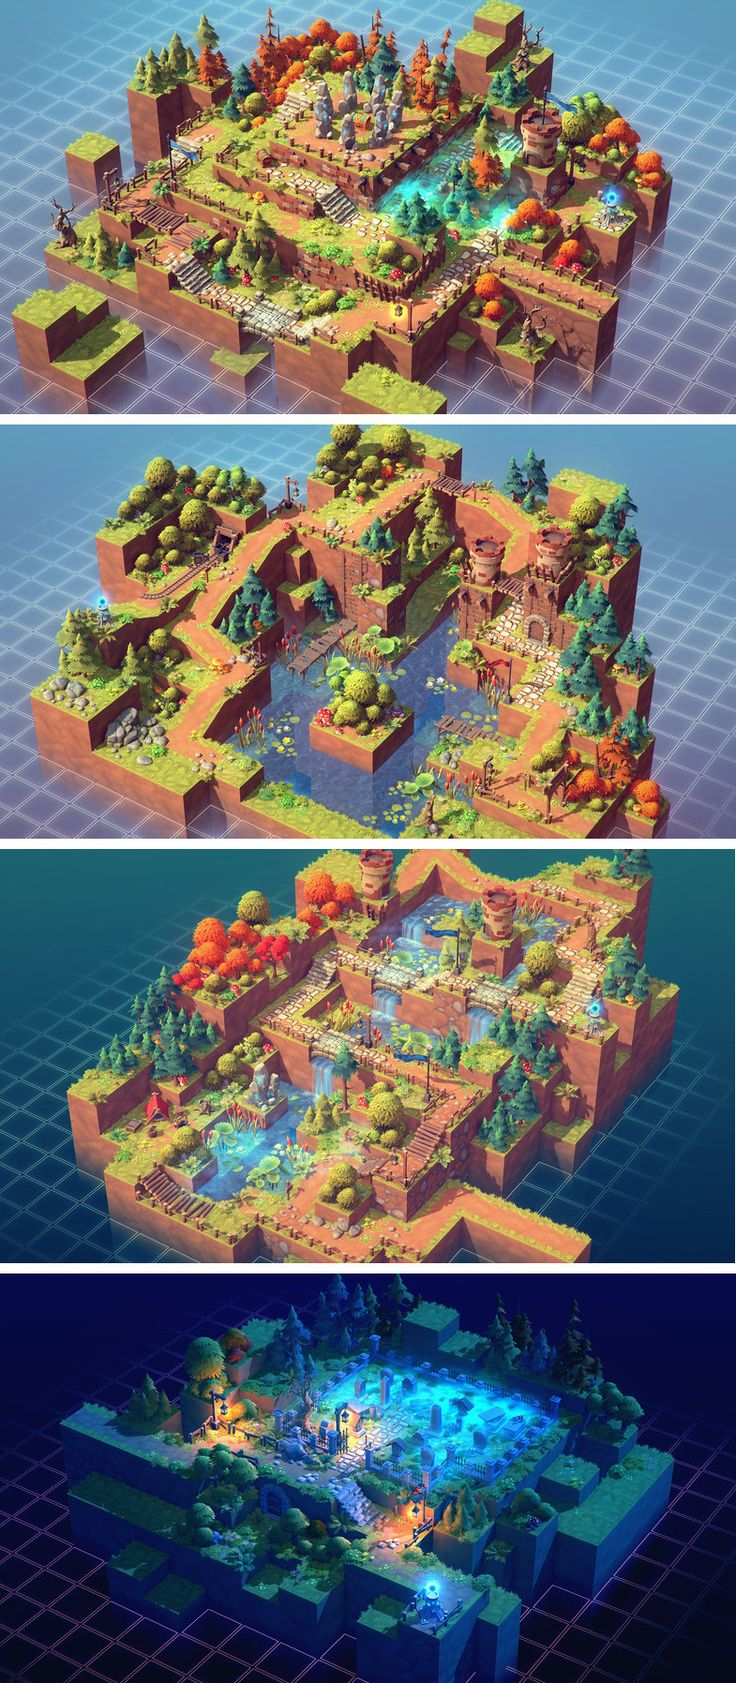 Isometric Pack 3d - modular blocks of surfaces (5 tiles multiplied by 8 combinations) - a variety of many props to choose from - trees, bushes and other types of vegetation - particle effects - Asset Store